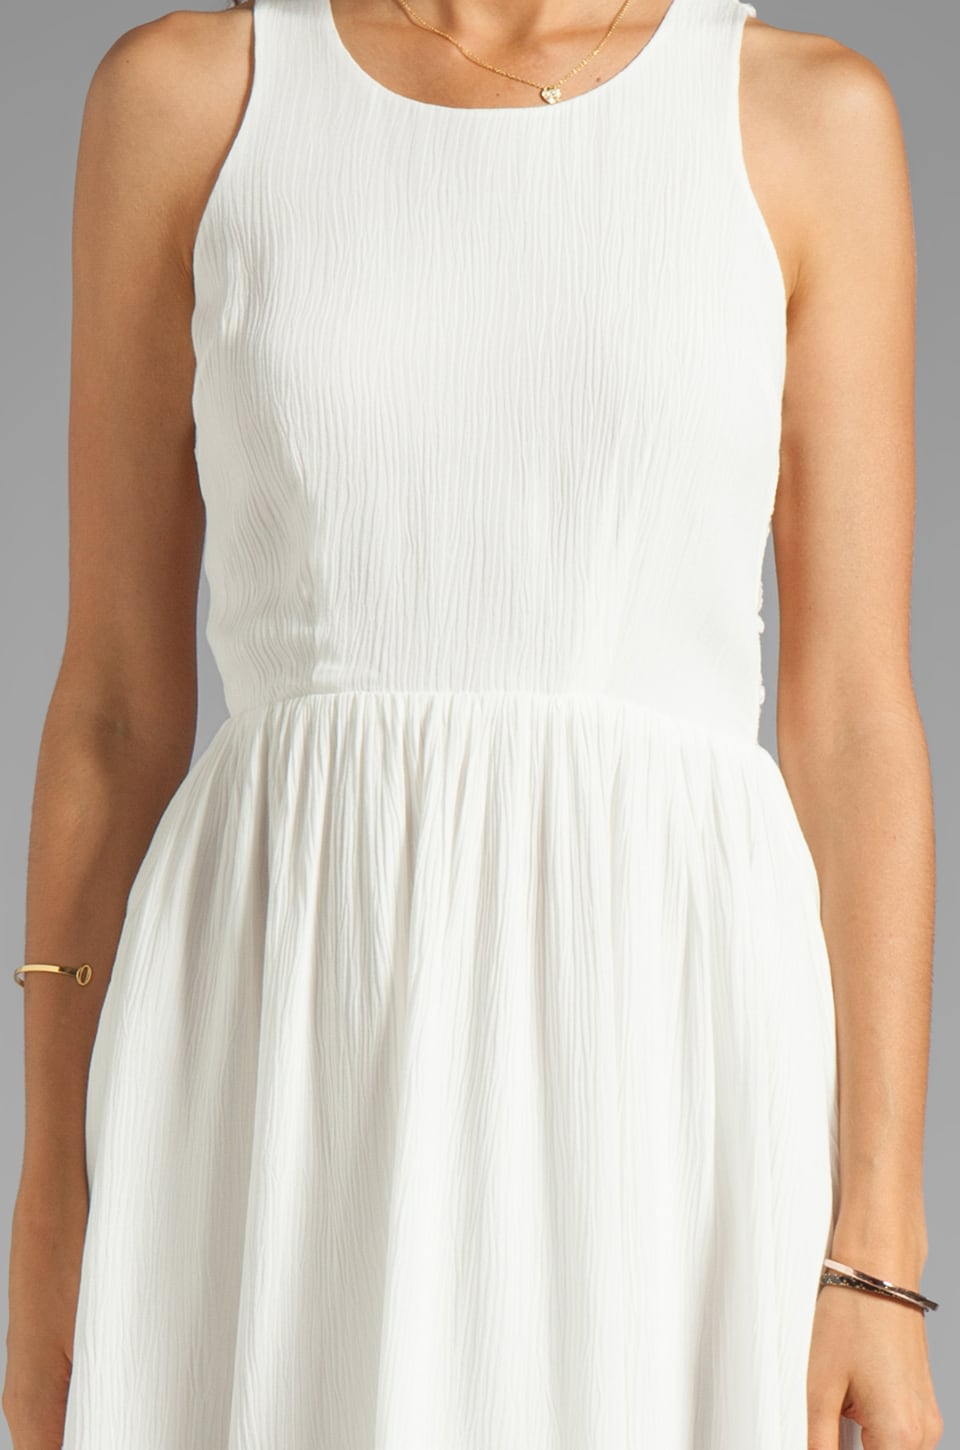 Eight Sixty Spider Web Back Gauze Dress in Off White